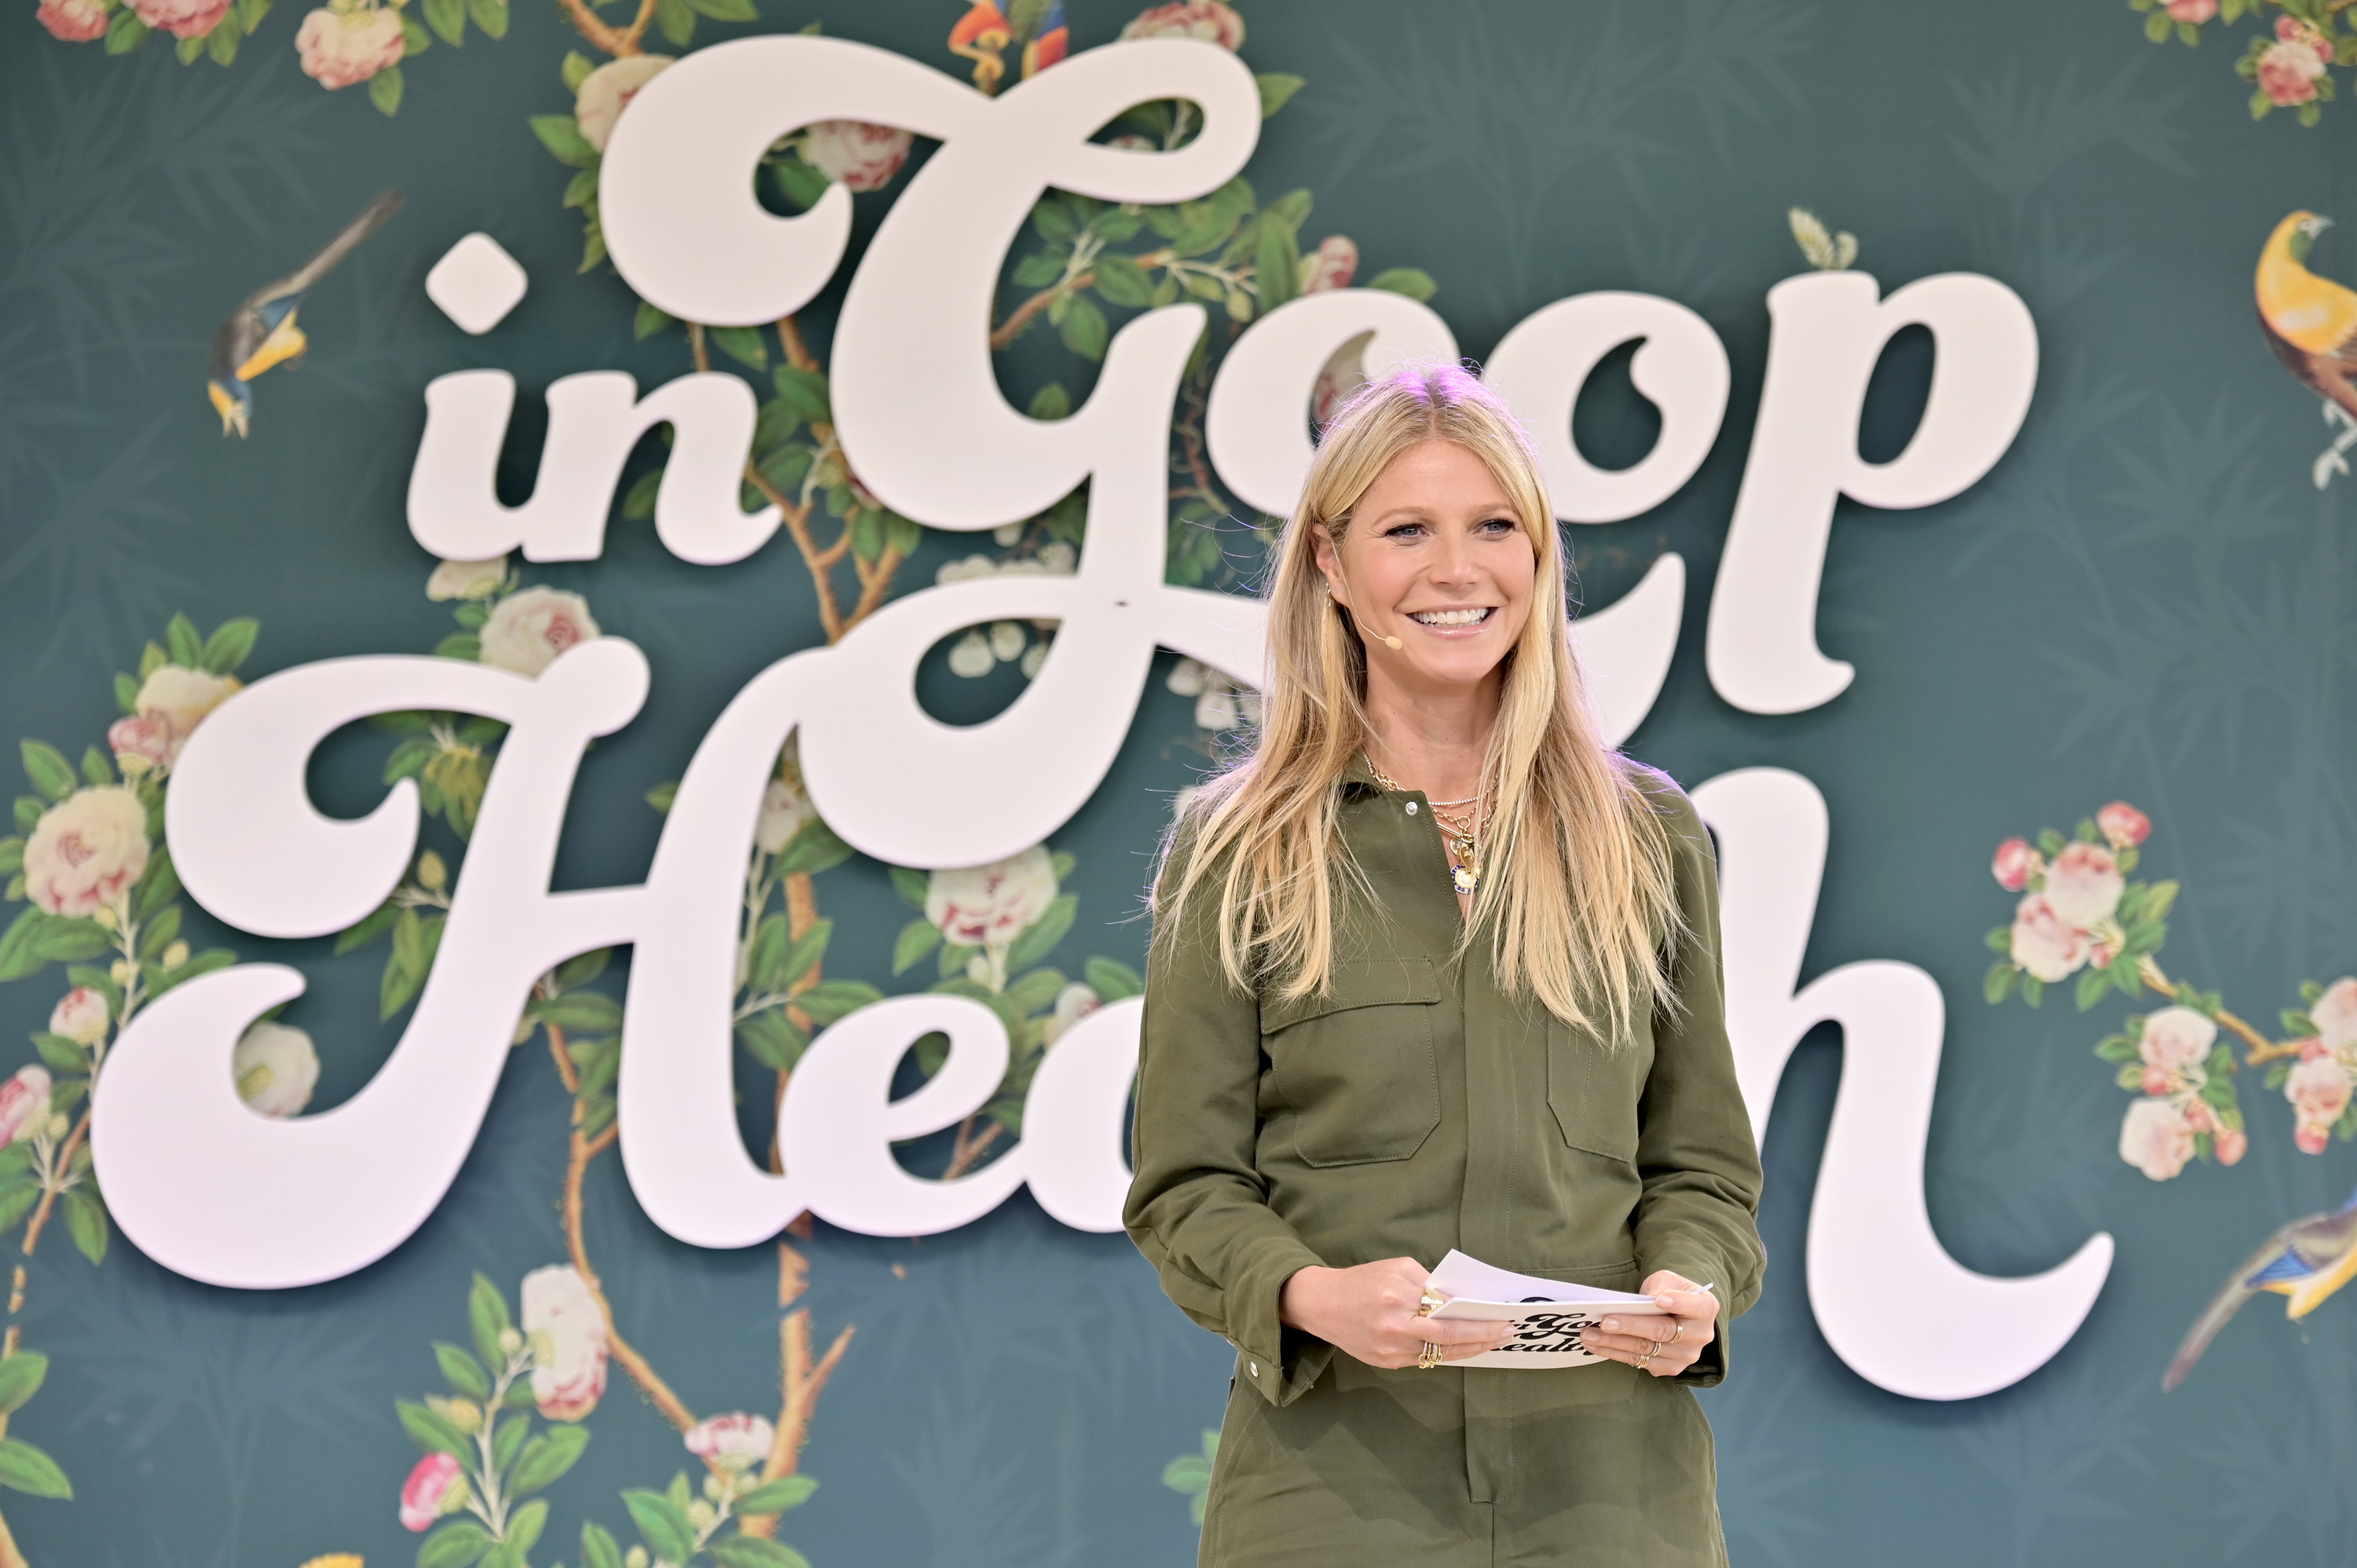 Gwyneth speaks onstage at a goop event